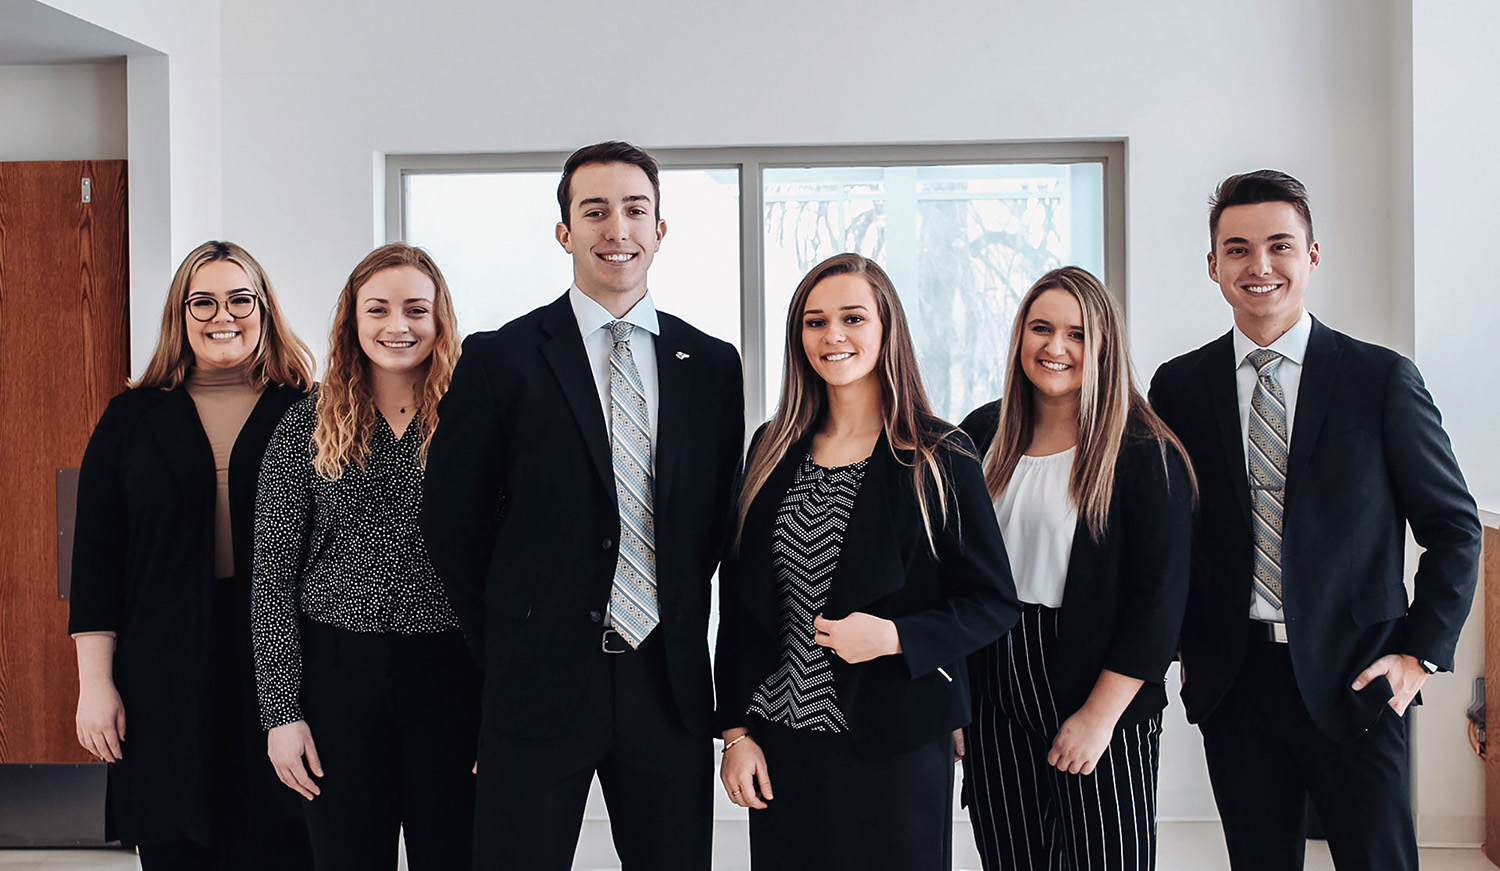 Noah Limbach, third from left, and Tristan Larson, fourth from left, will serve as UNK student body president and vice president for 2021-22. Their executive cabinet members are, from left, Chief of Staff Maria Garcia Quintana, Secretary of Student Affairs Grace Tolstedt, Secretary of Community Relations Tatum Vondra and Secretary of the Treasury Ryan Woitalewicz. (Photos courtesy of Cassidy Stelling)